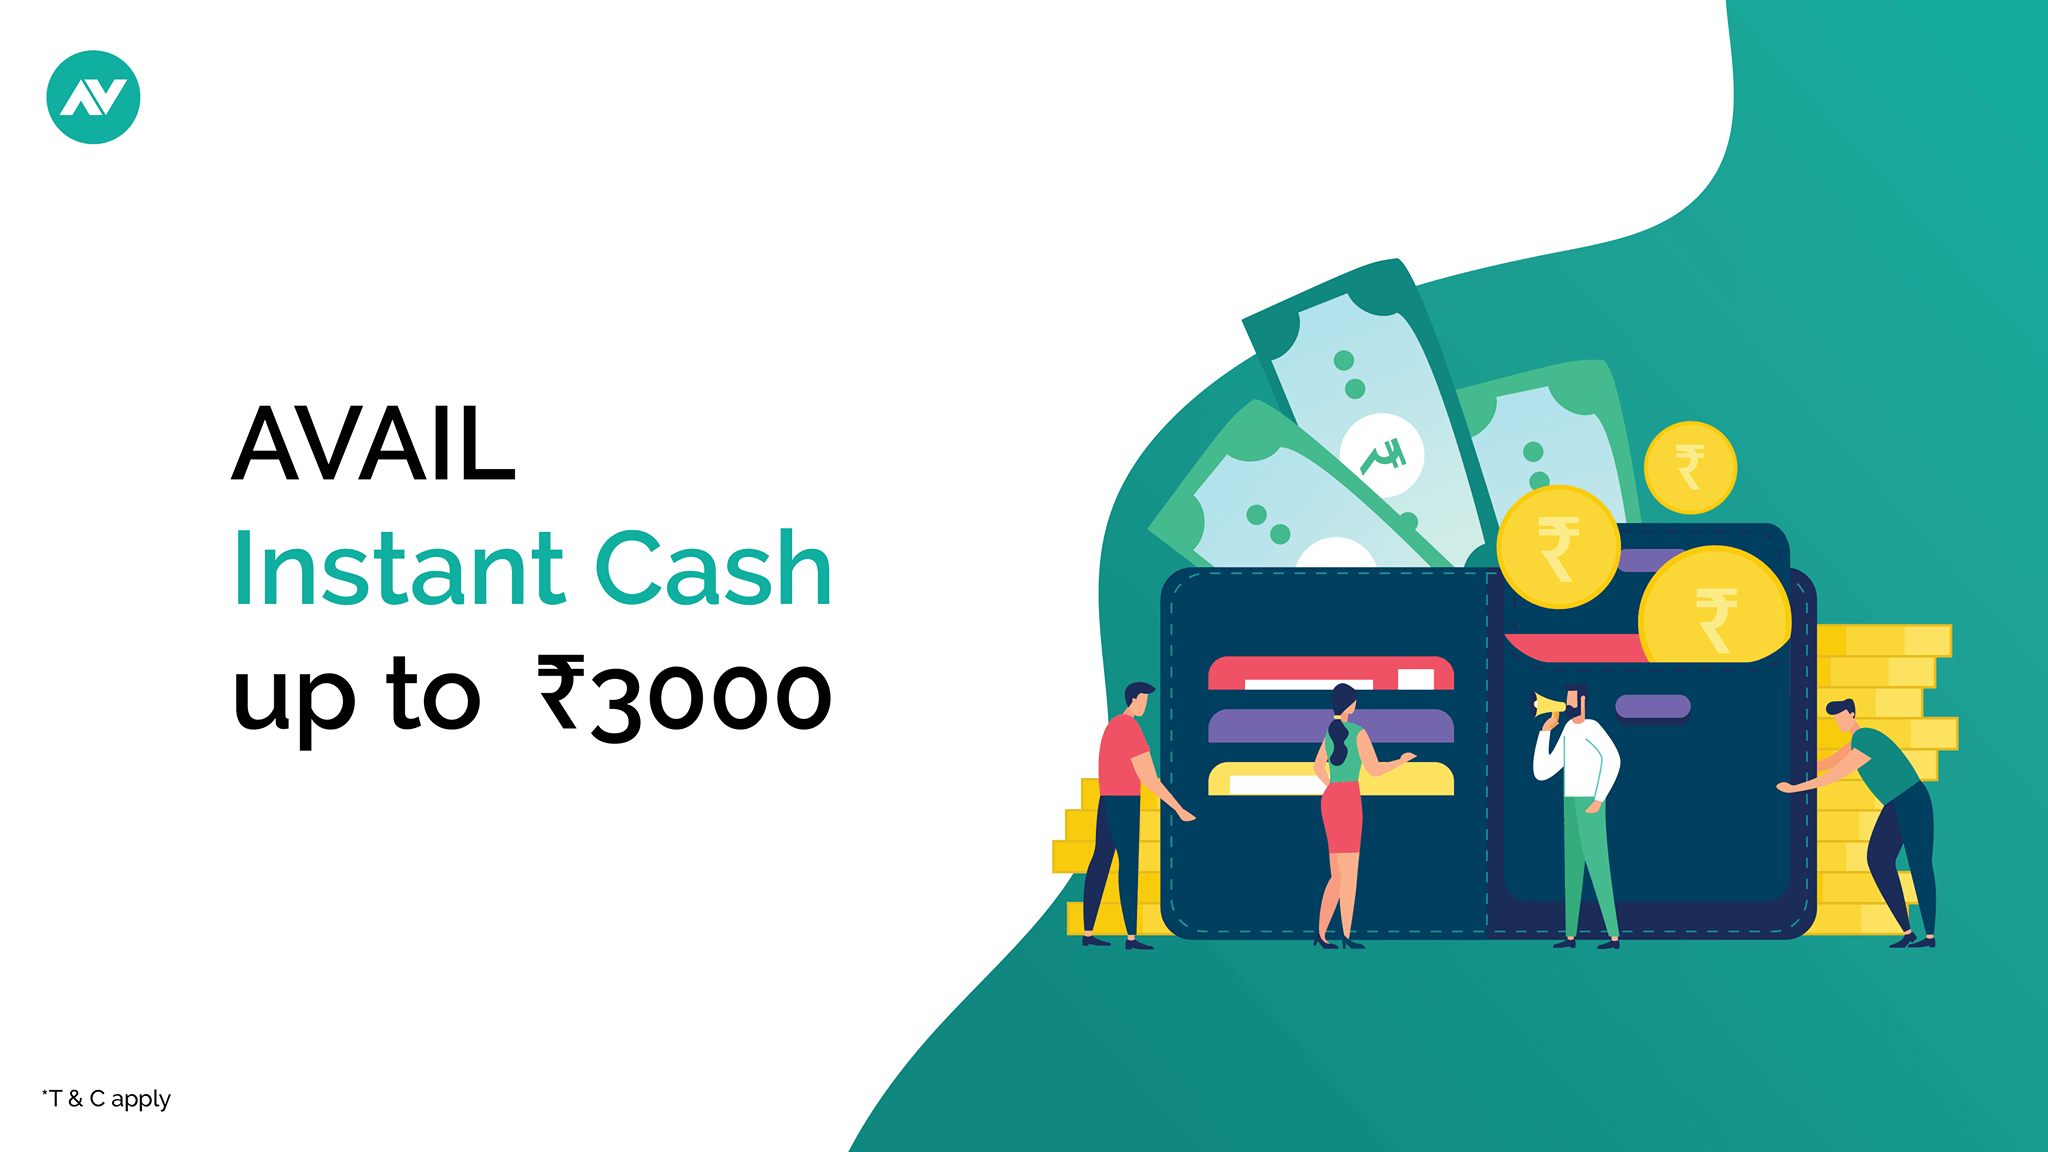 Get INR 3000 Instant Cash Loan in Your Bank Account-Services-Insurance & Financial Services-Bangalore